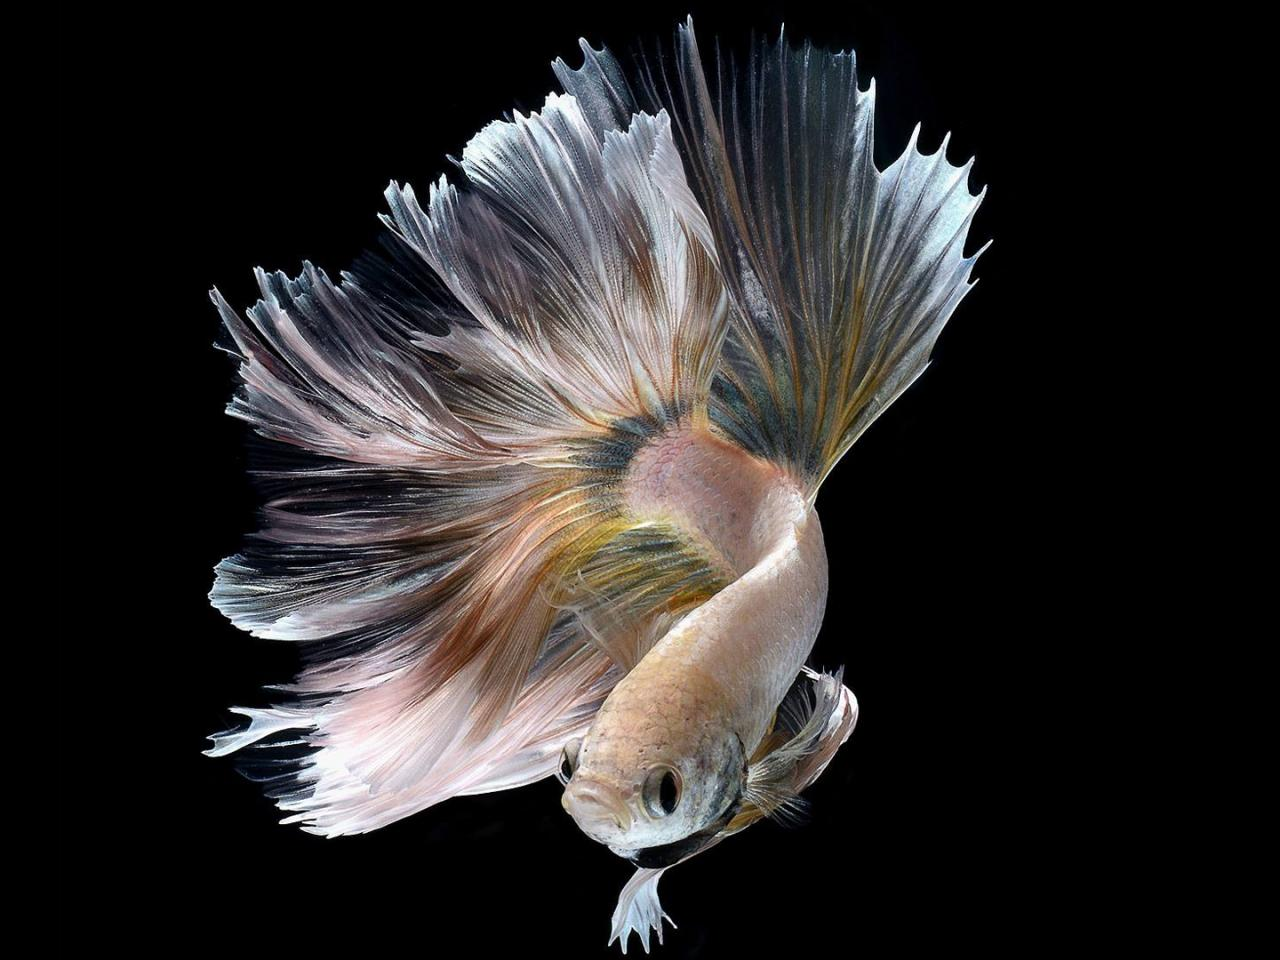 Wallpaper Iphone Pastel Halfmoon Albino Betta Fish Picture 18 Of 20 Wallpapers